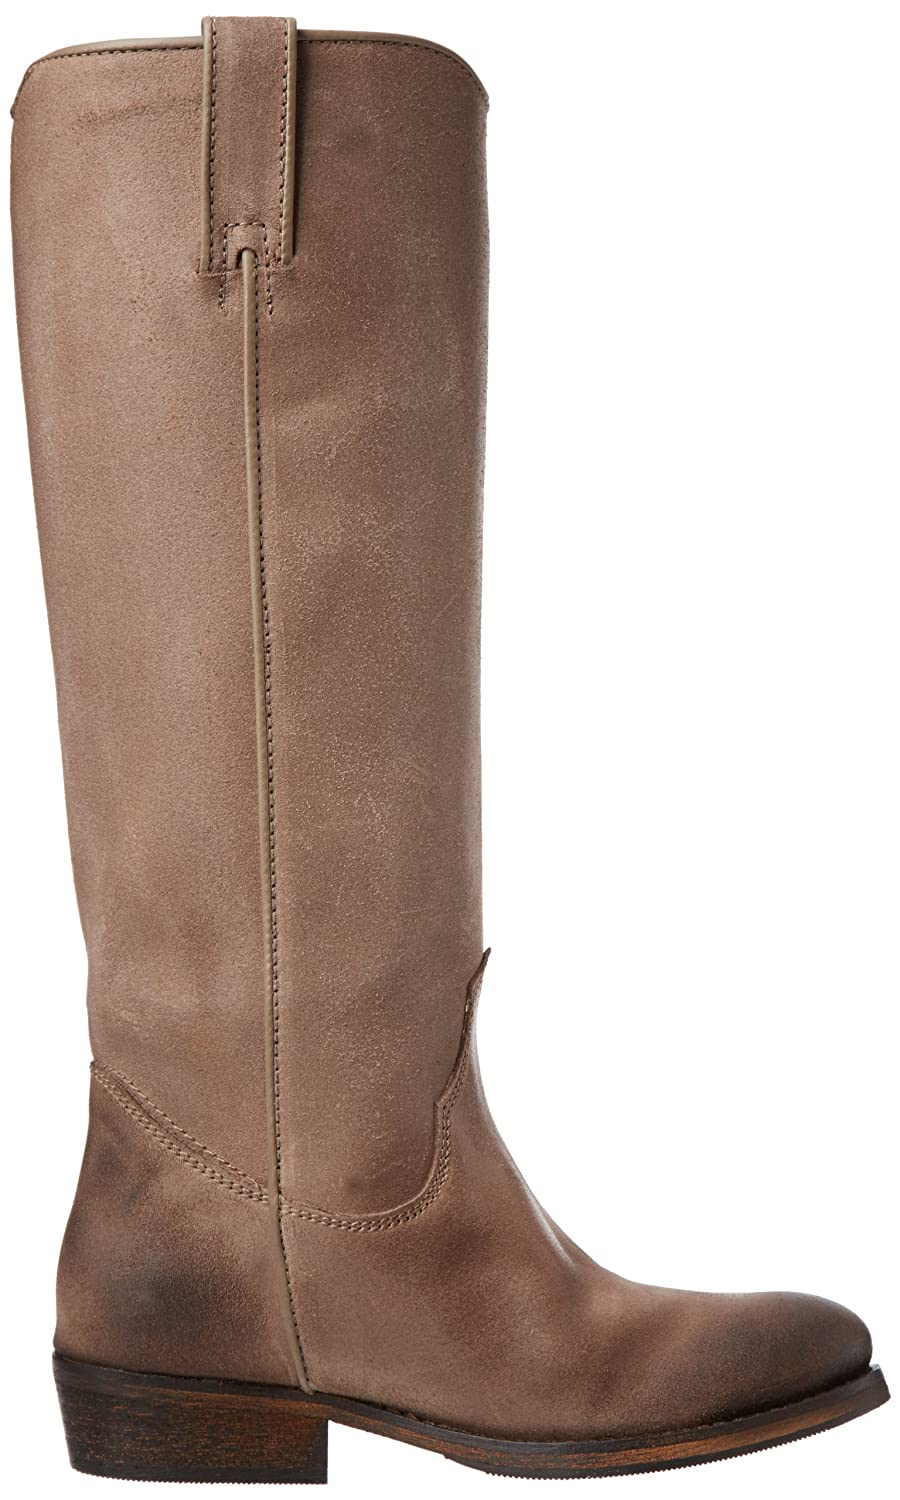 fashionable for sale Bronx Women Bronx Women Pamelo Knee High Boots Brown cheap sale perfect geniue stockist for sale pick a best sale online clearance footlocker uNWbsyZ